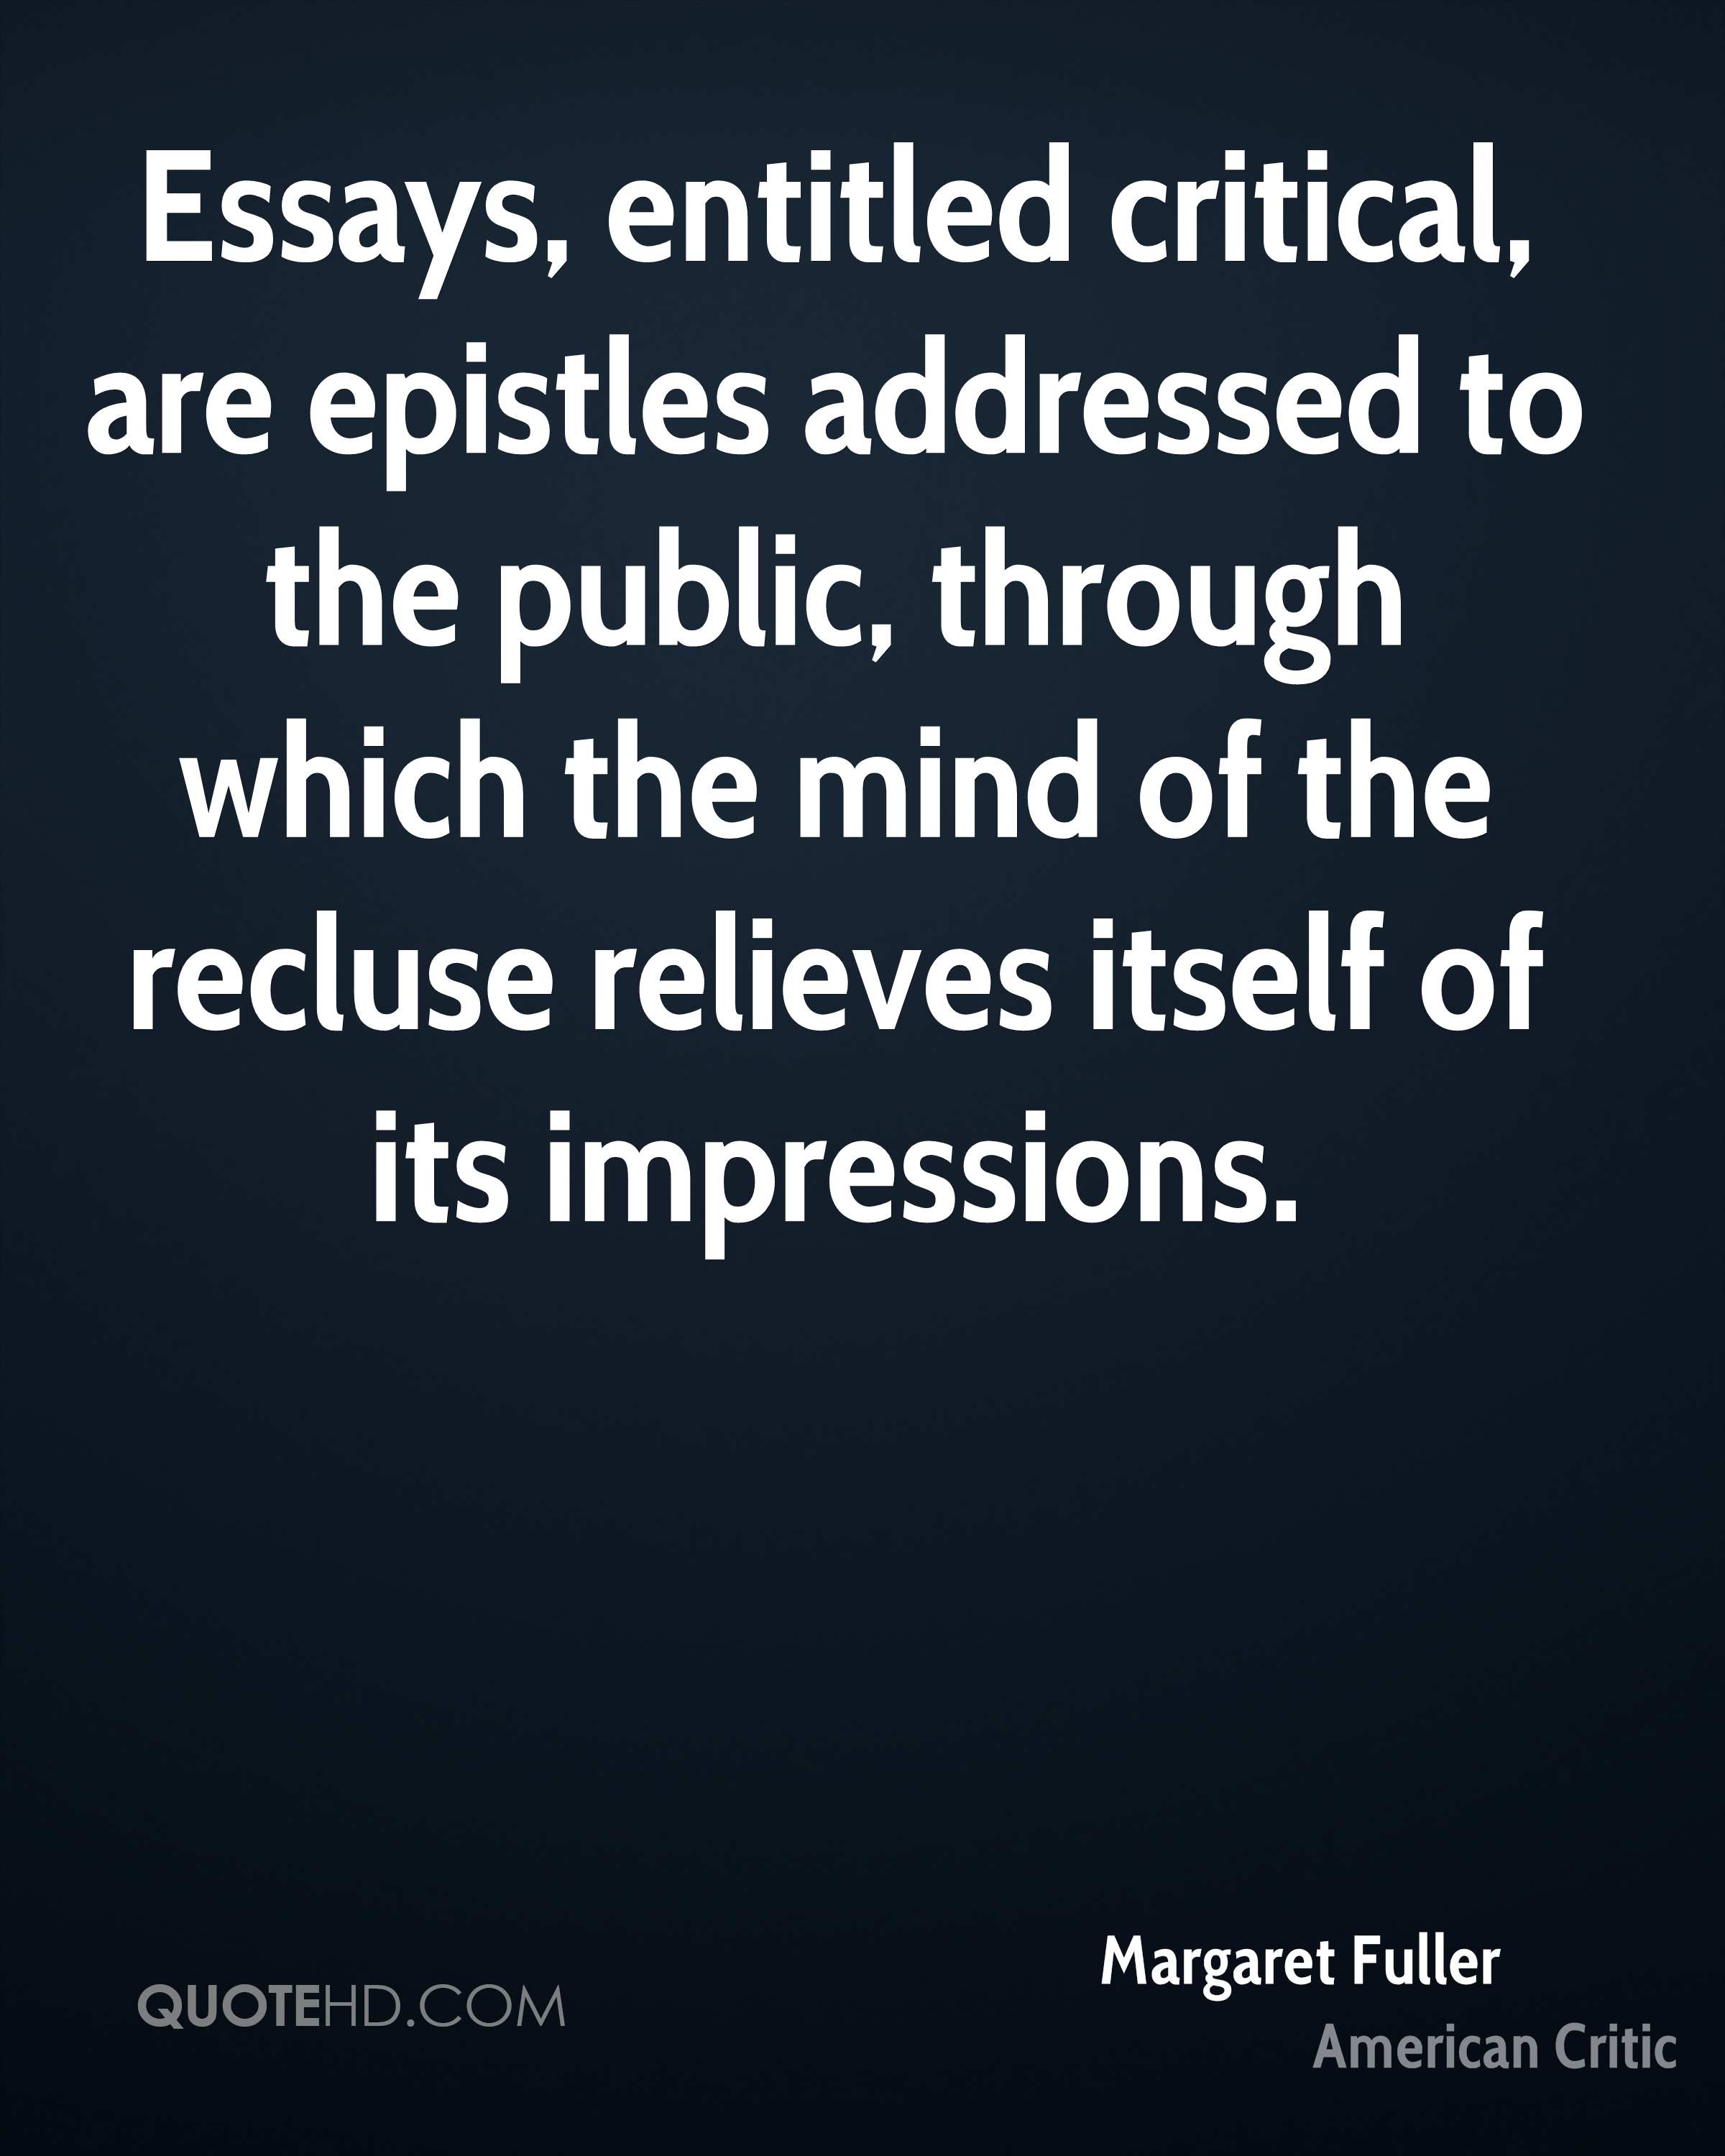 Essays, entitled critical, are epistles addressed to the public, through which the mind of the recluse relieves itself of its impressions.